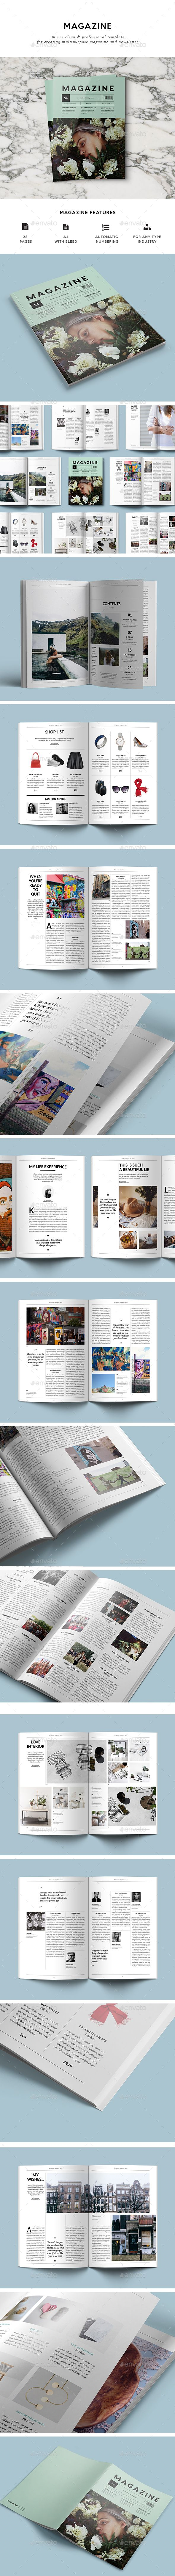 Magazine Template InDesign INDD. Download here: https://graphicriver.net/item/magazine-template/17559609?ref=ksioks